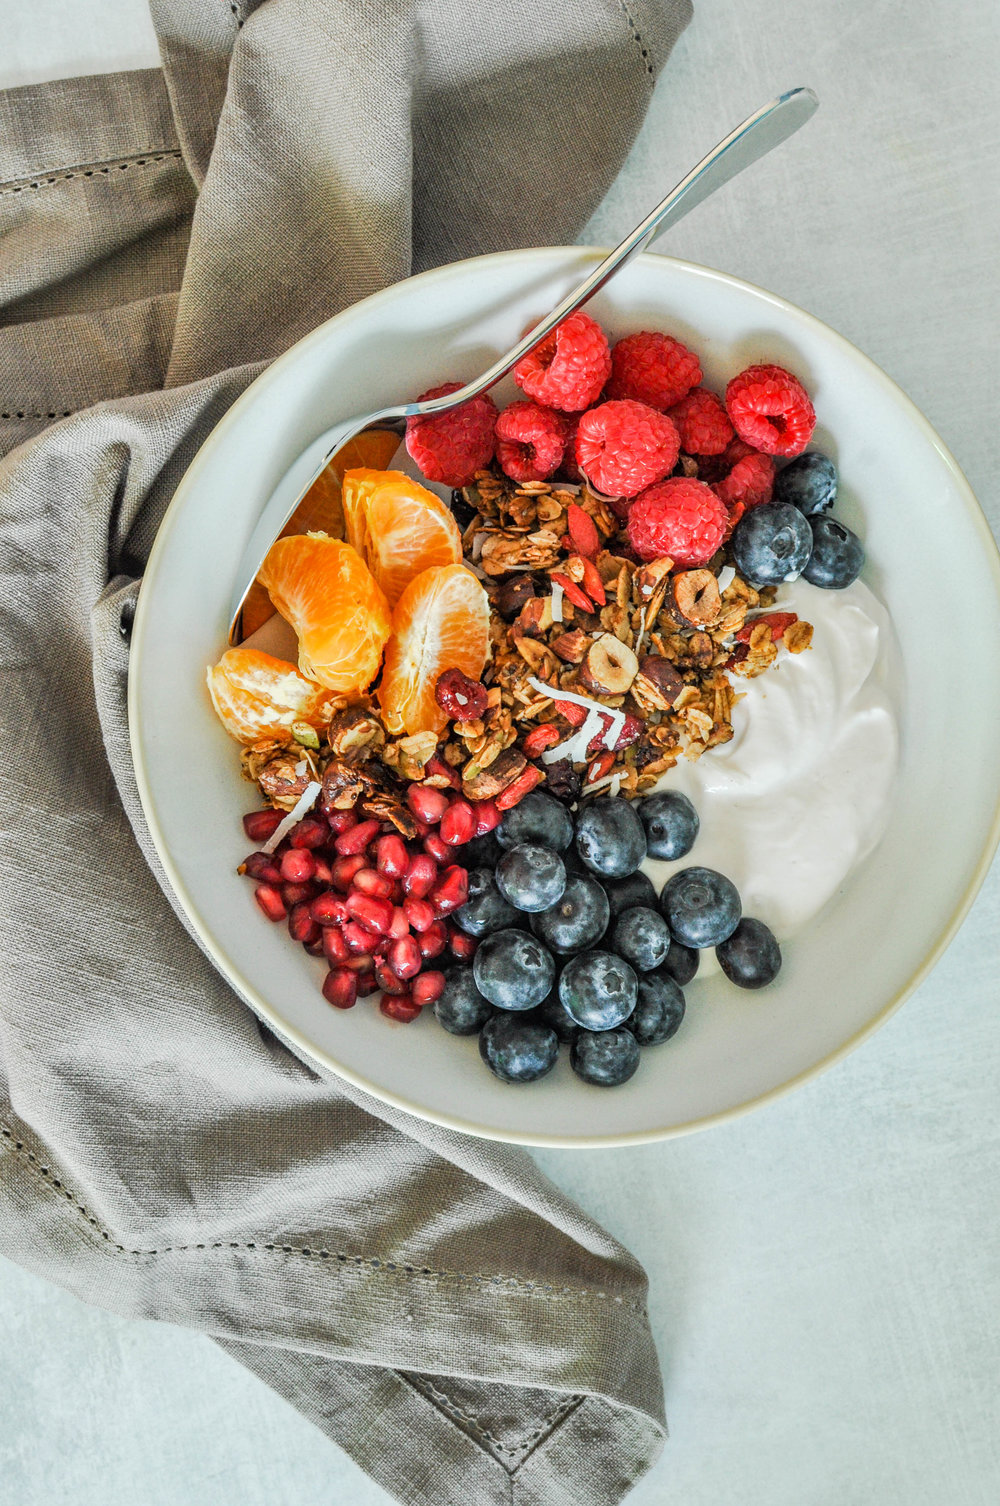 Best Ever Homemade Granola Recipe. This healthier, homemade granola is a delicious breakfast treat when served with yogurt and fresh fruit. It's ready in just 35 minutes!